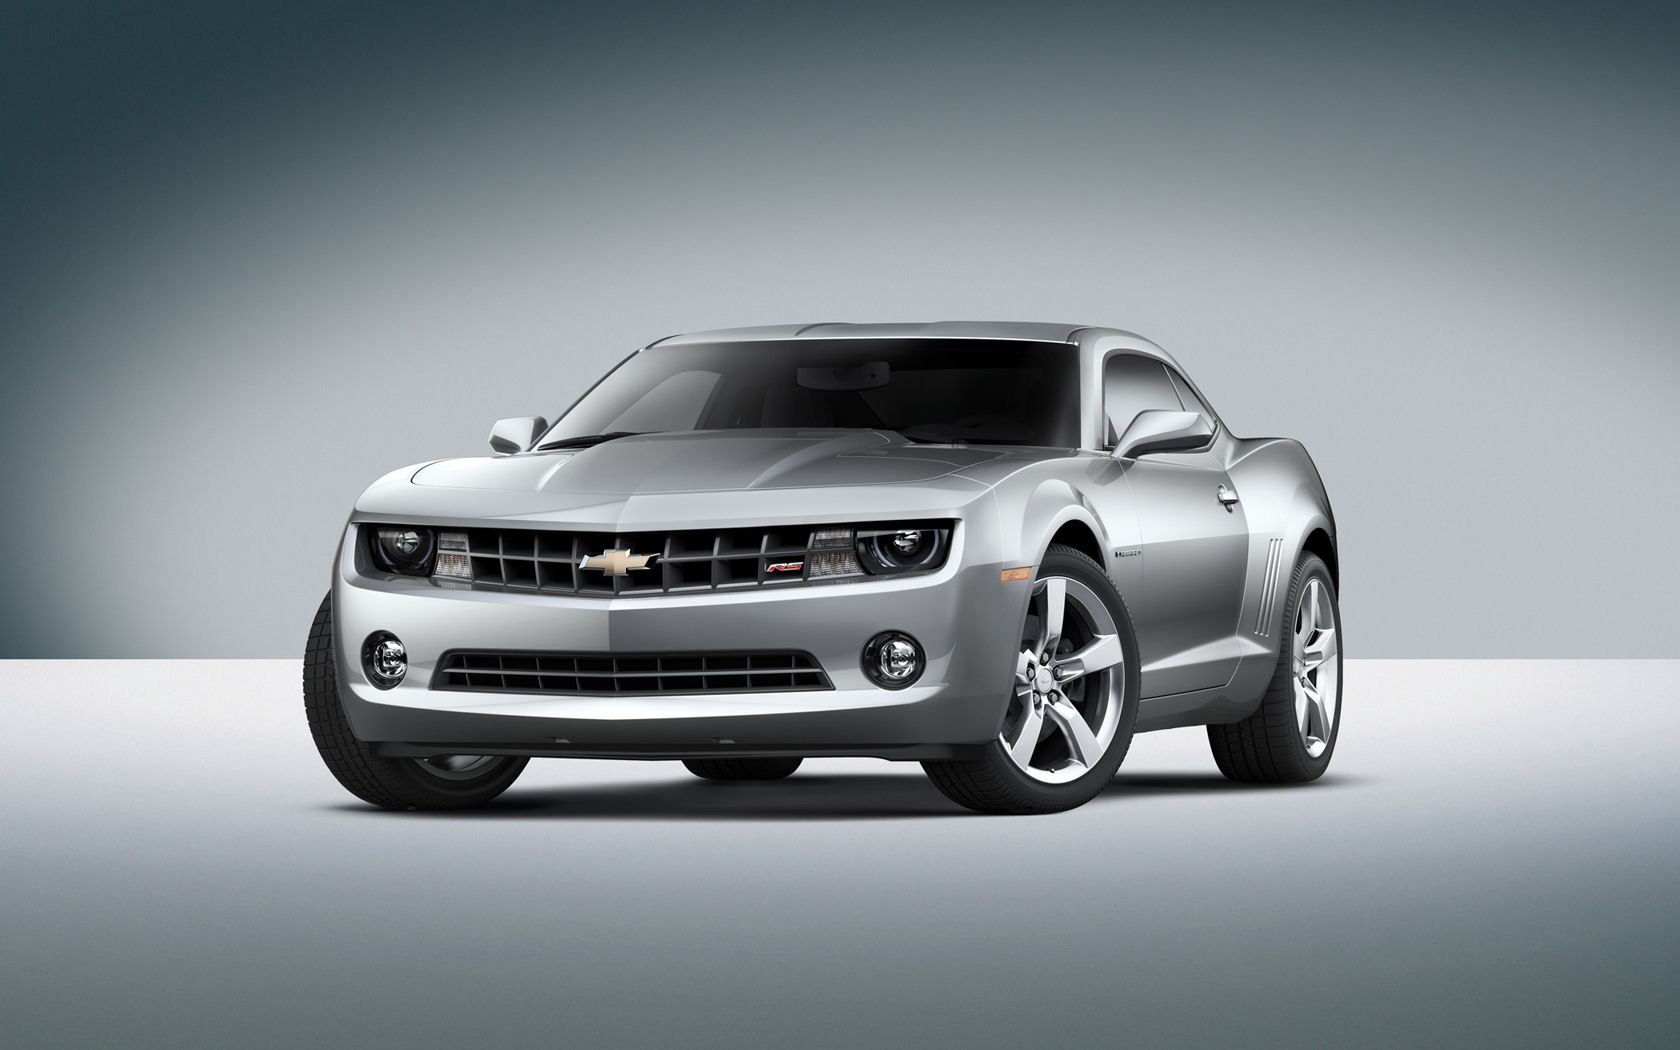 Camaro Chevrolet Camaro Desktop Wallpapers Widescreen Wallpaper 1680x1050